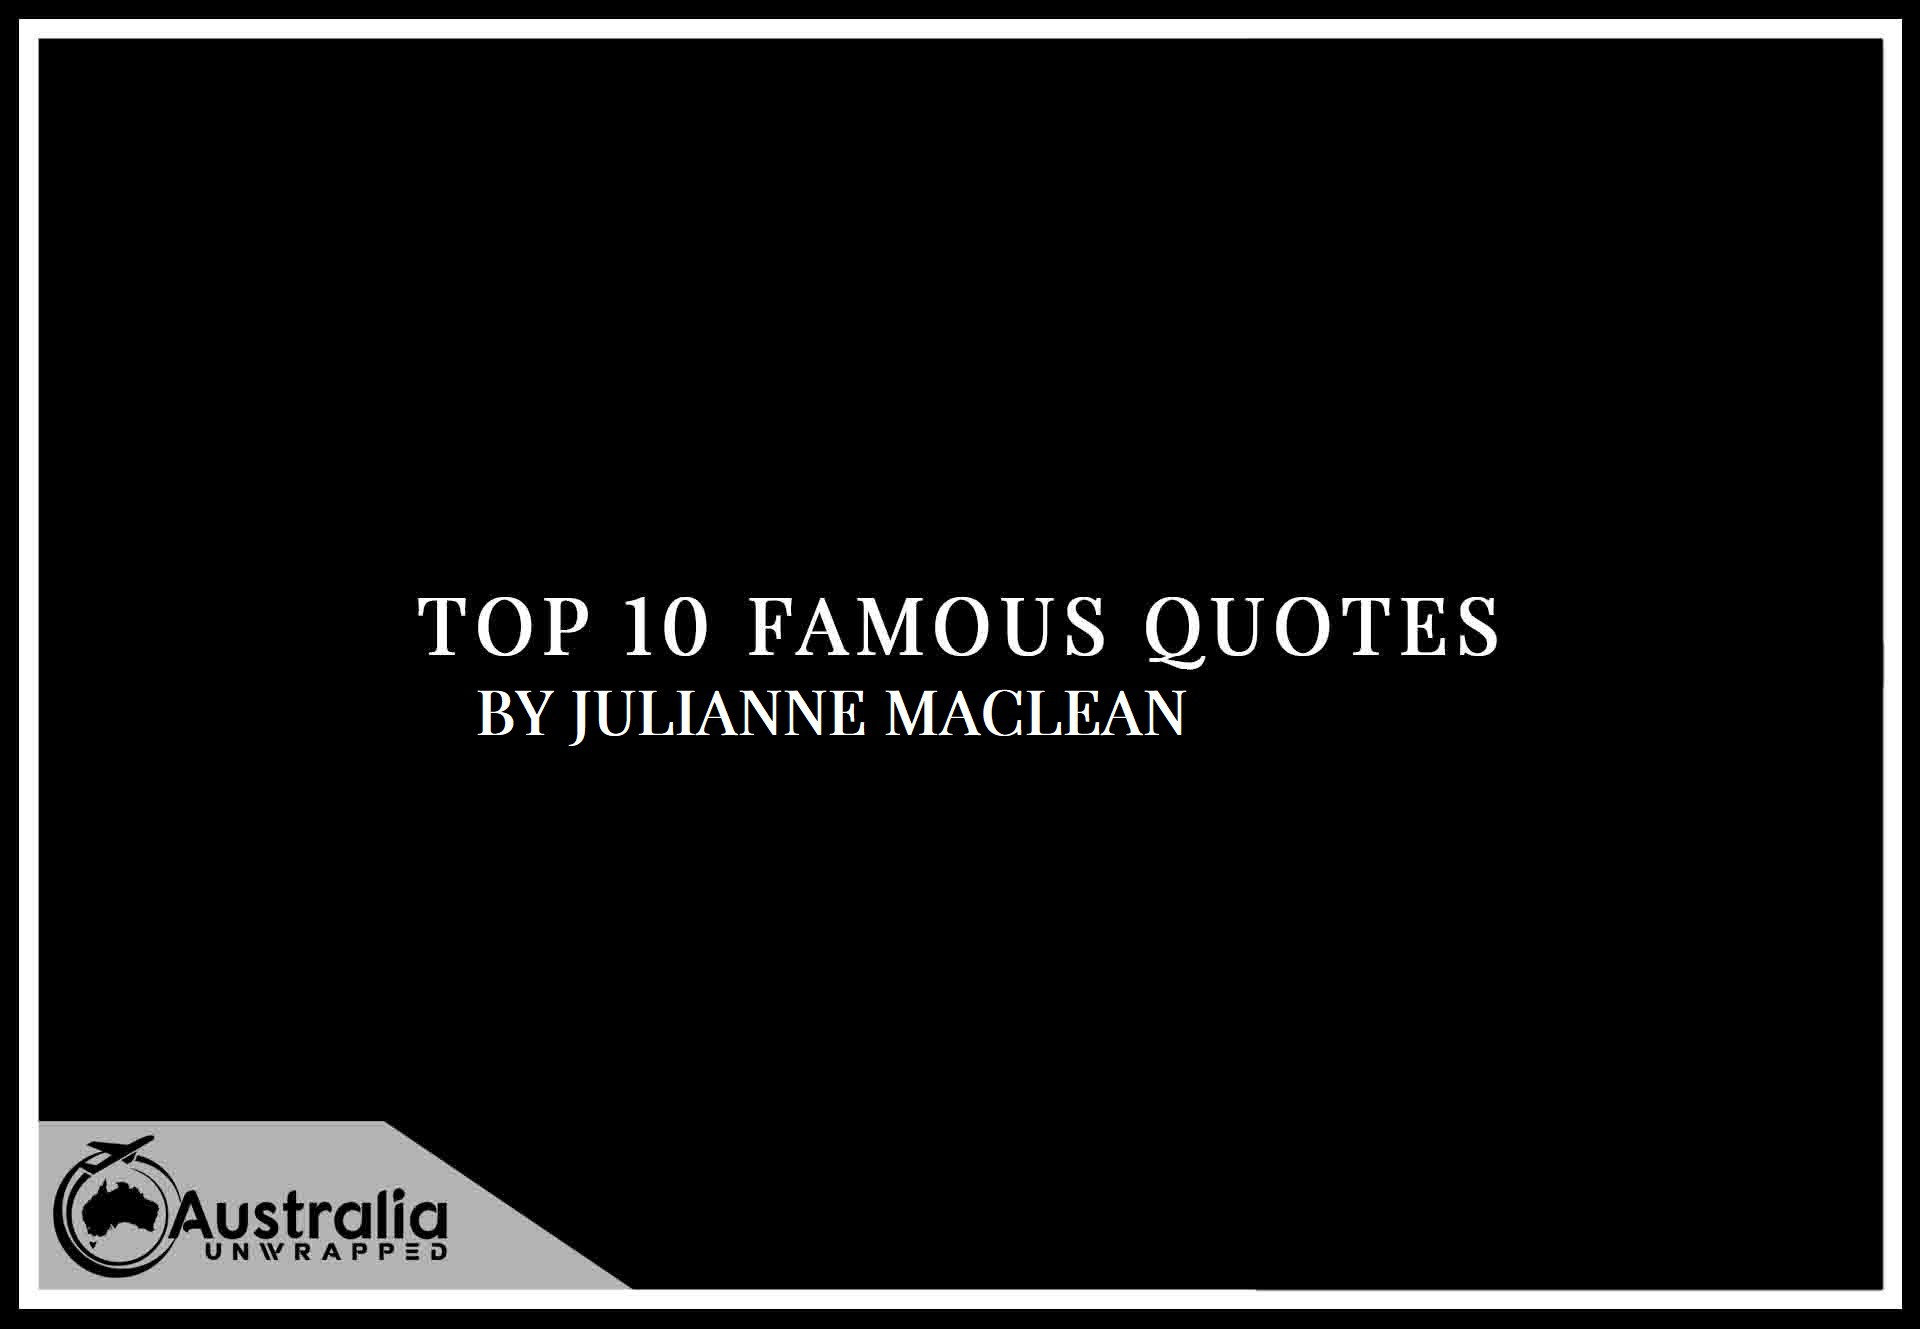 Top 10 Famous Quotes by Author Julianne MacLean